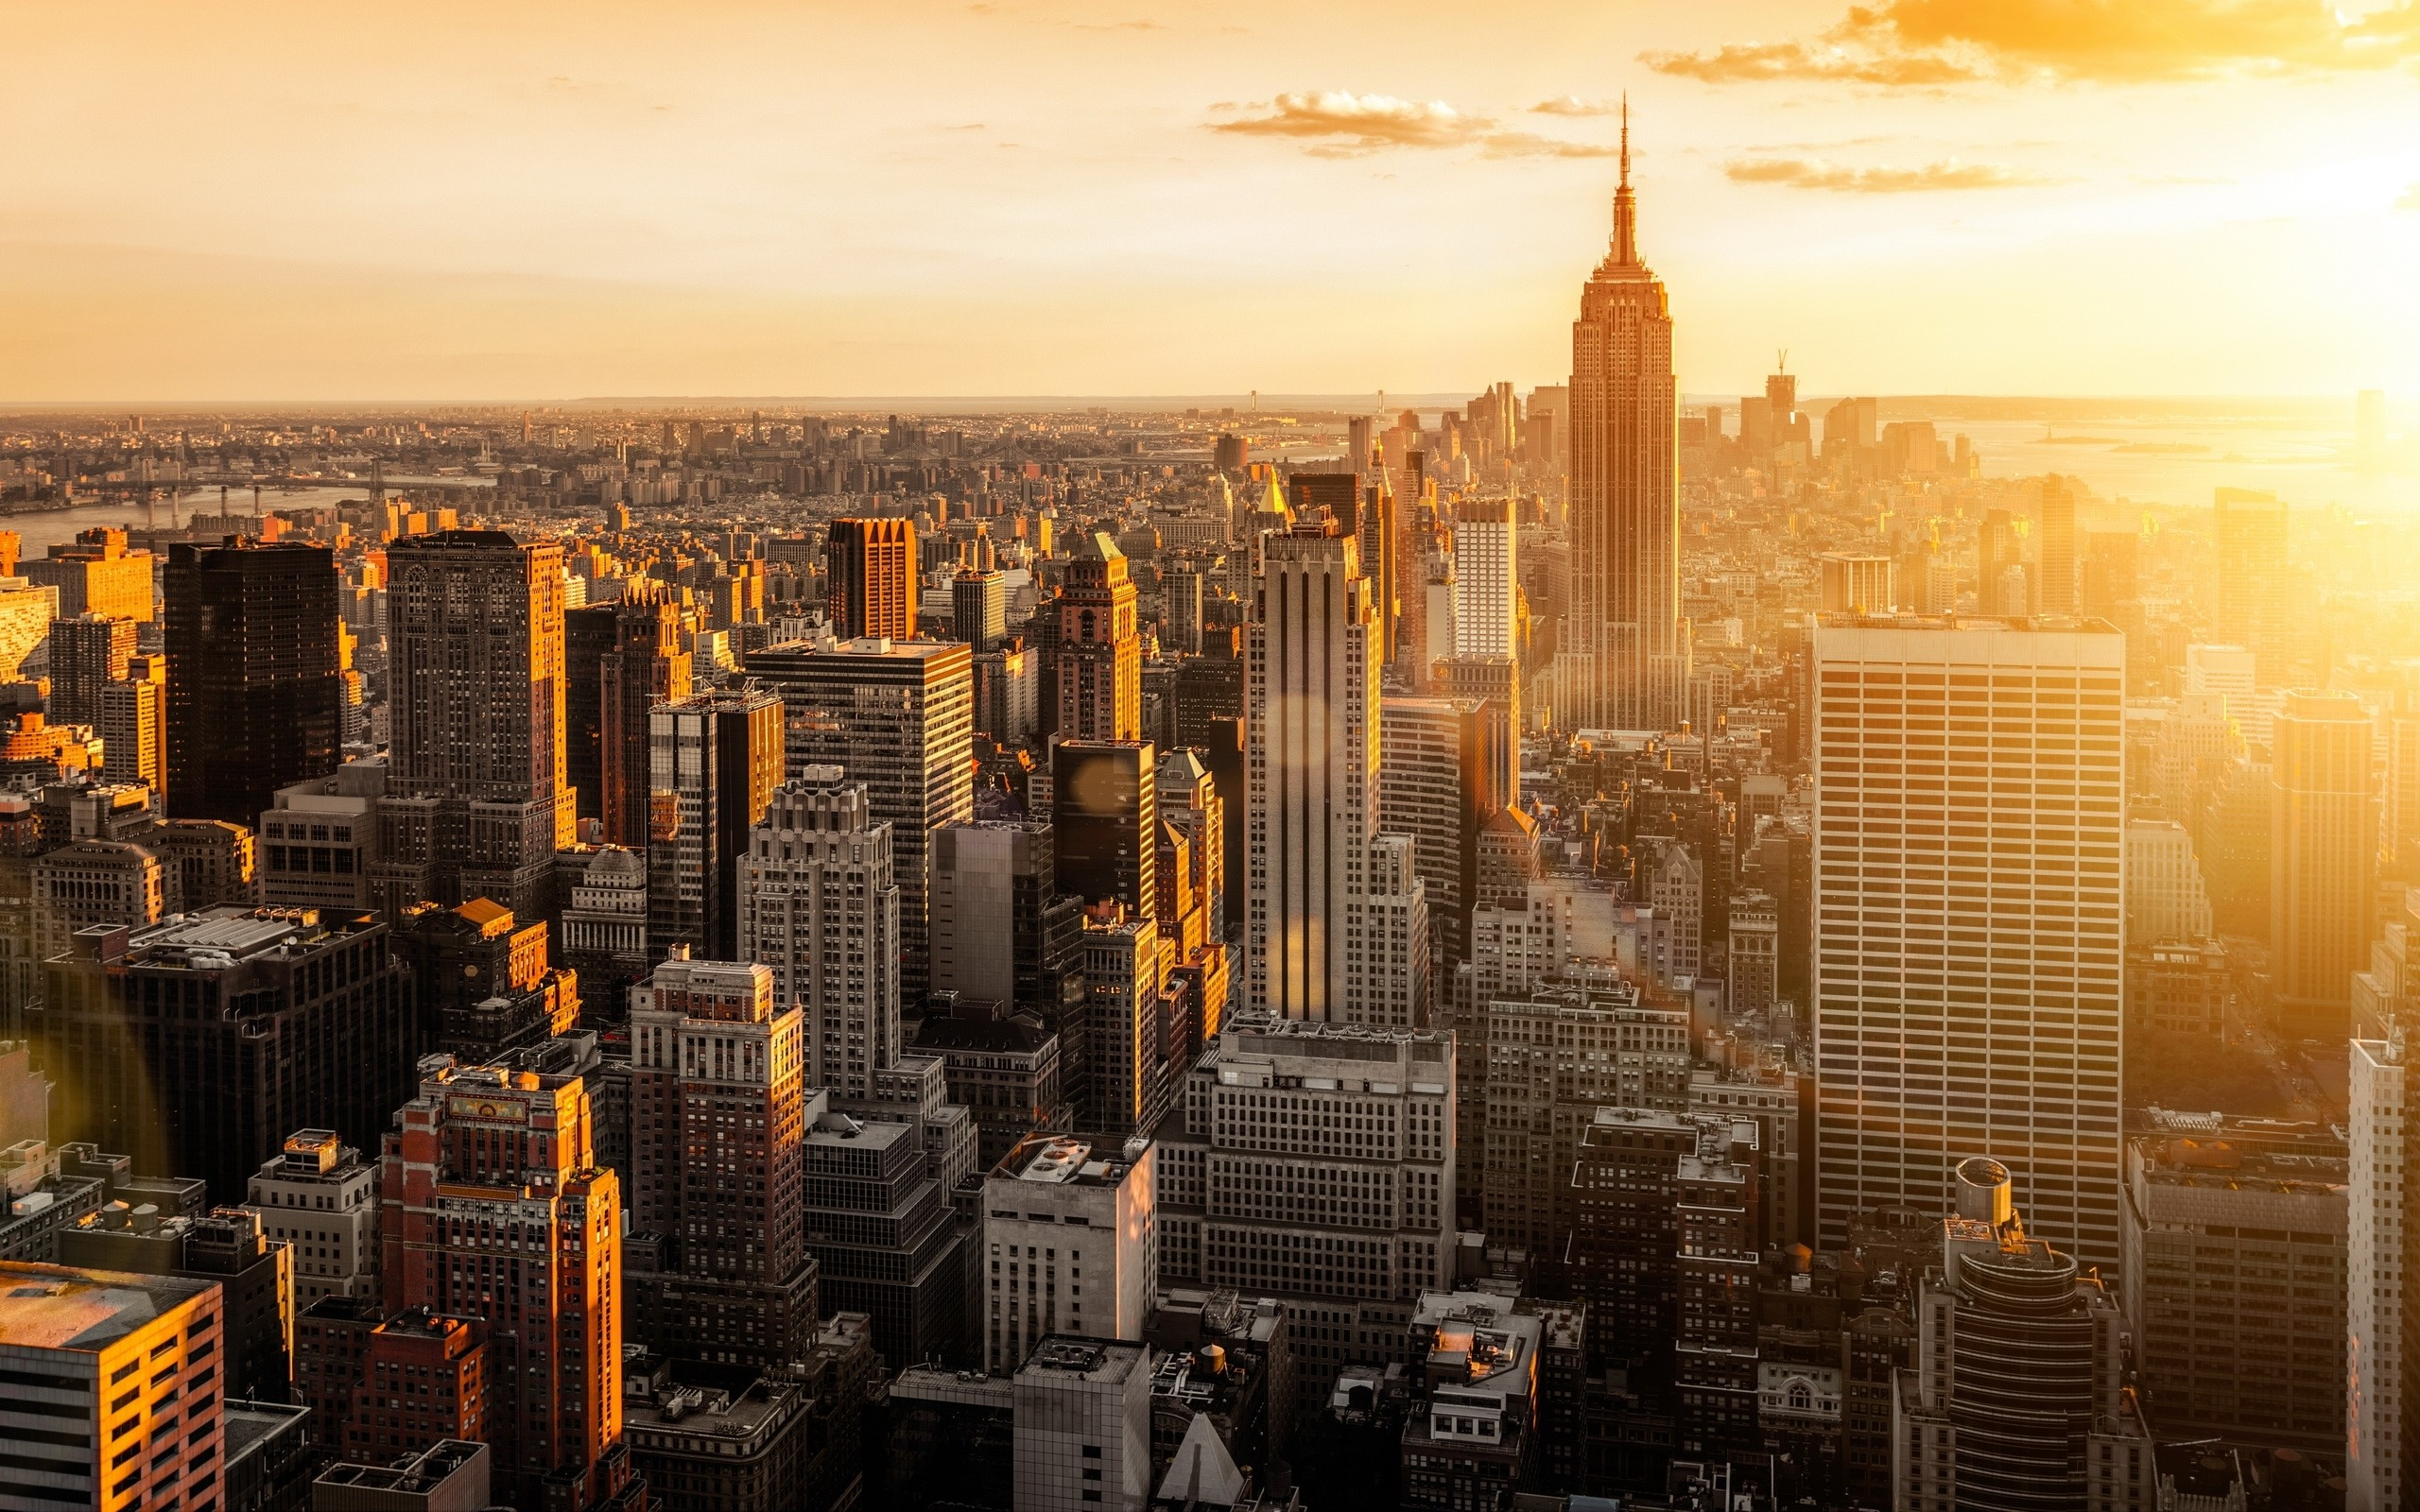 2560x1600 Title : nyc skyline wallpapers group (88+). Dimension : 2560 x 1600. File  Type : JPG/JPEG